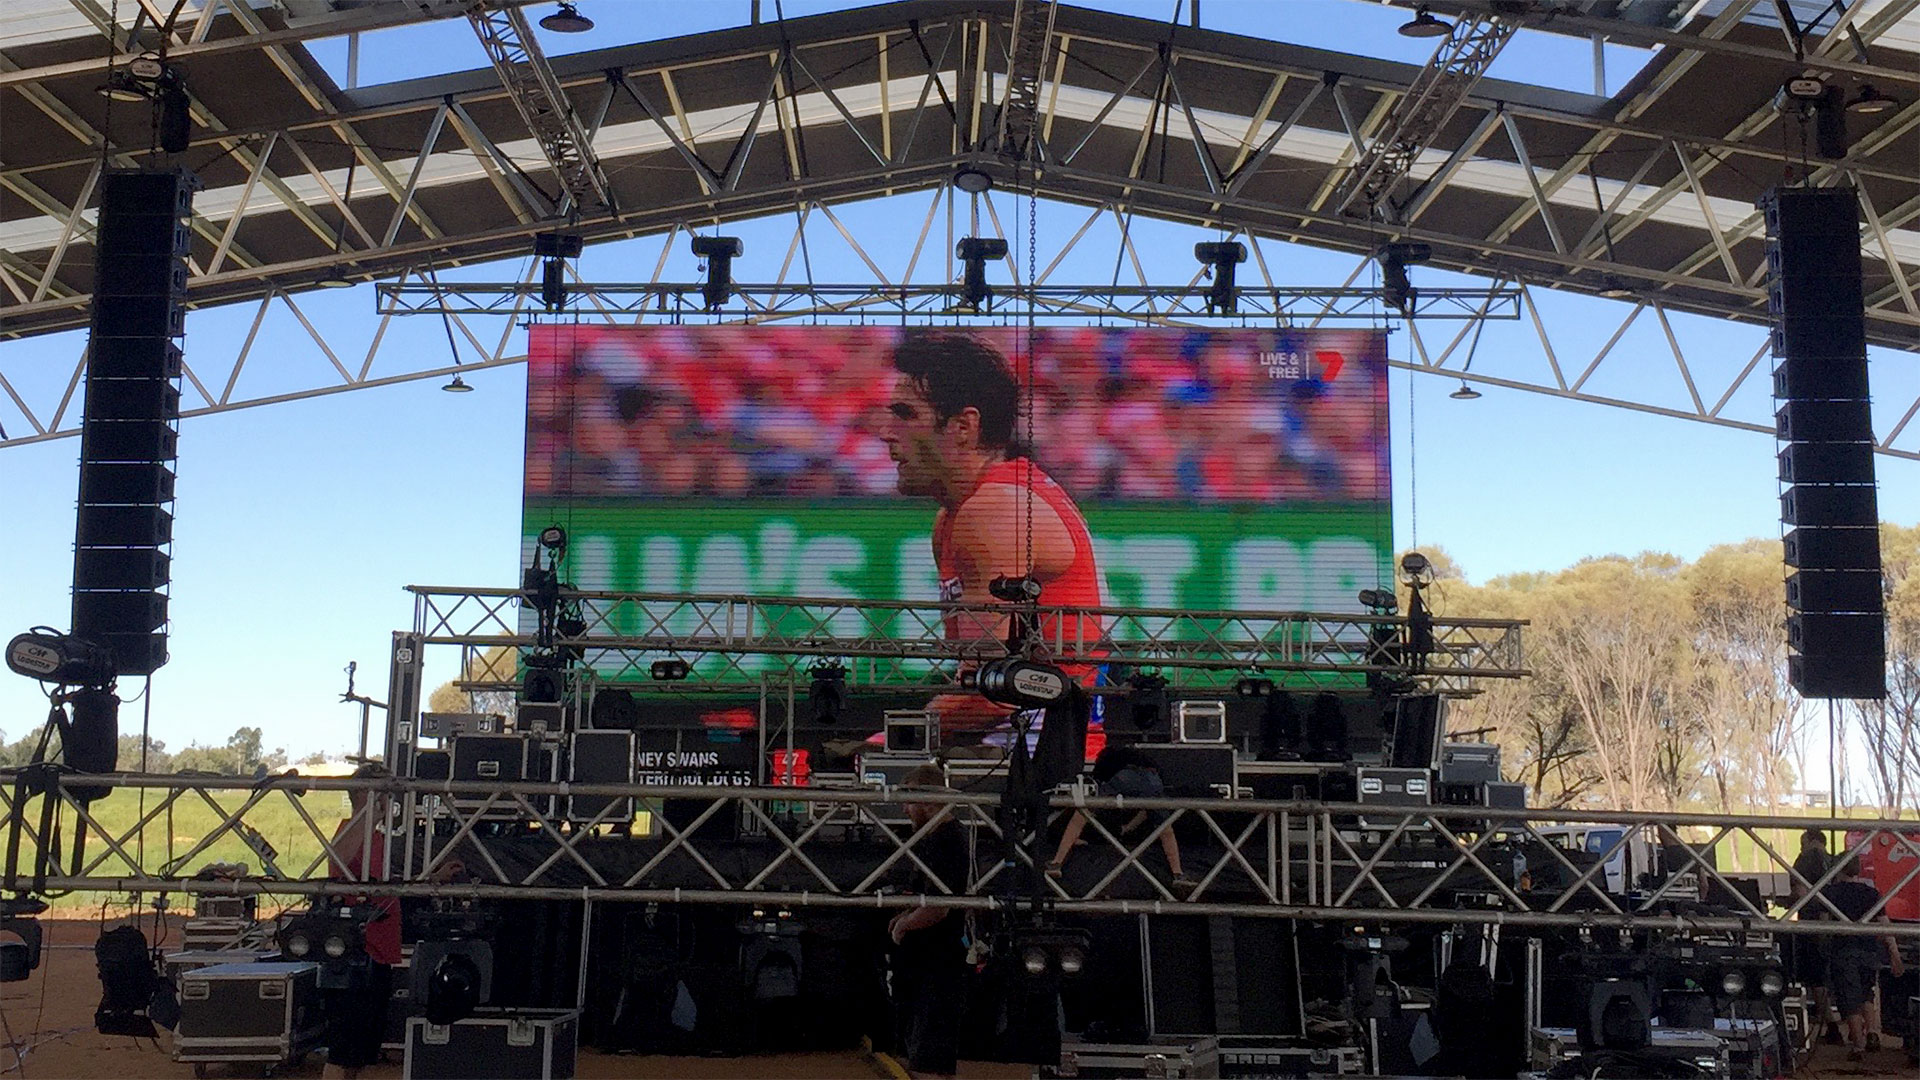 Led Screen for AFL Grand Final, Stockmans Hall of Fame